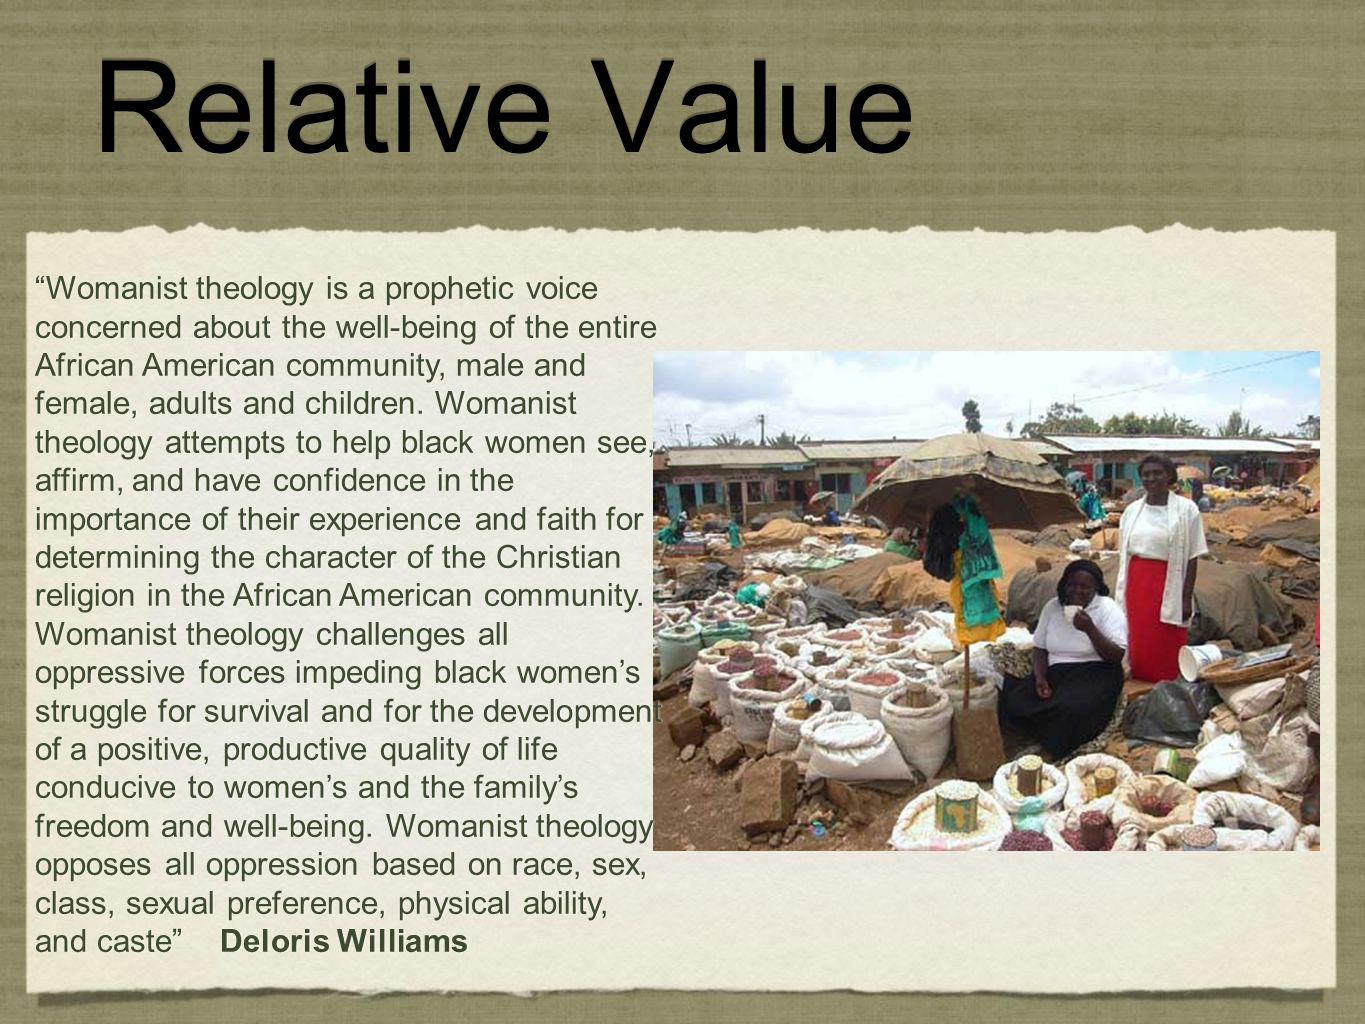 Relative Value Womanist theology is a prophetic voice concerned about the well-being of the entire African American community, male and female, adults and children.